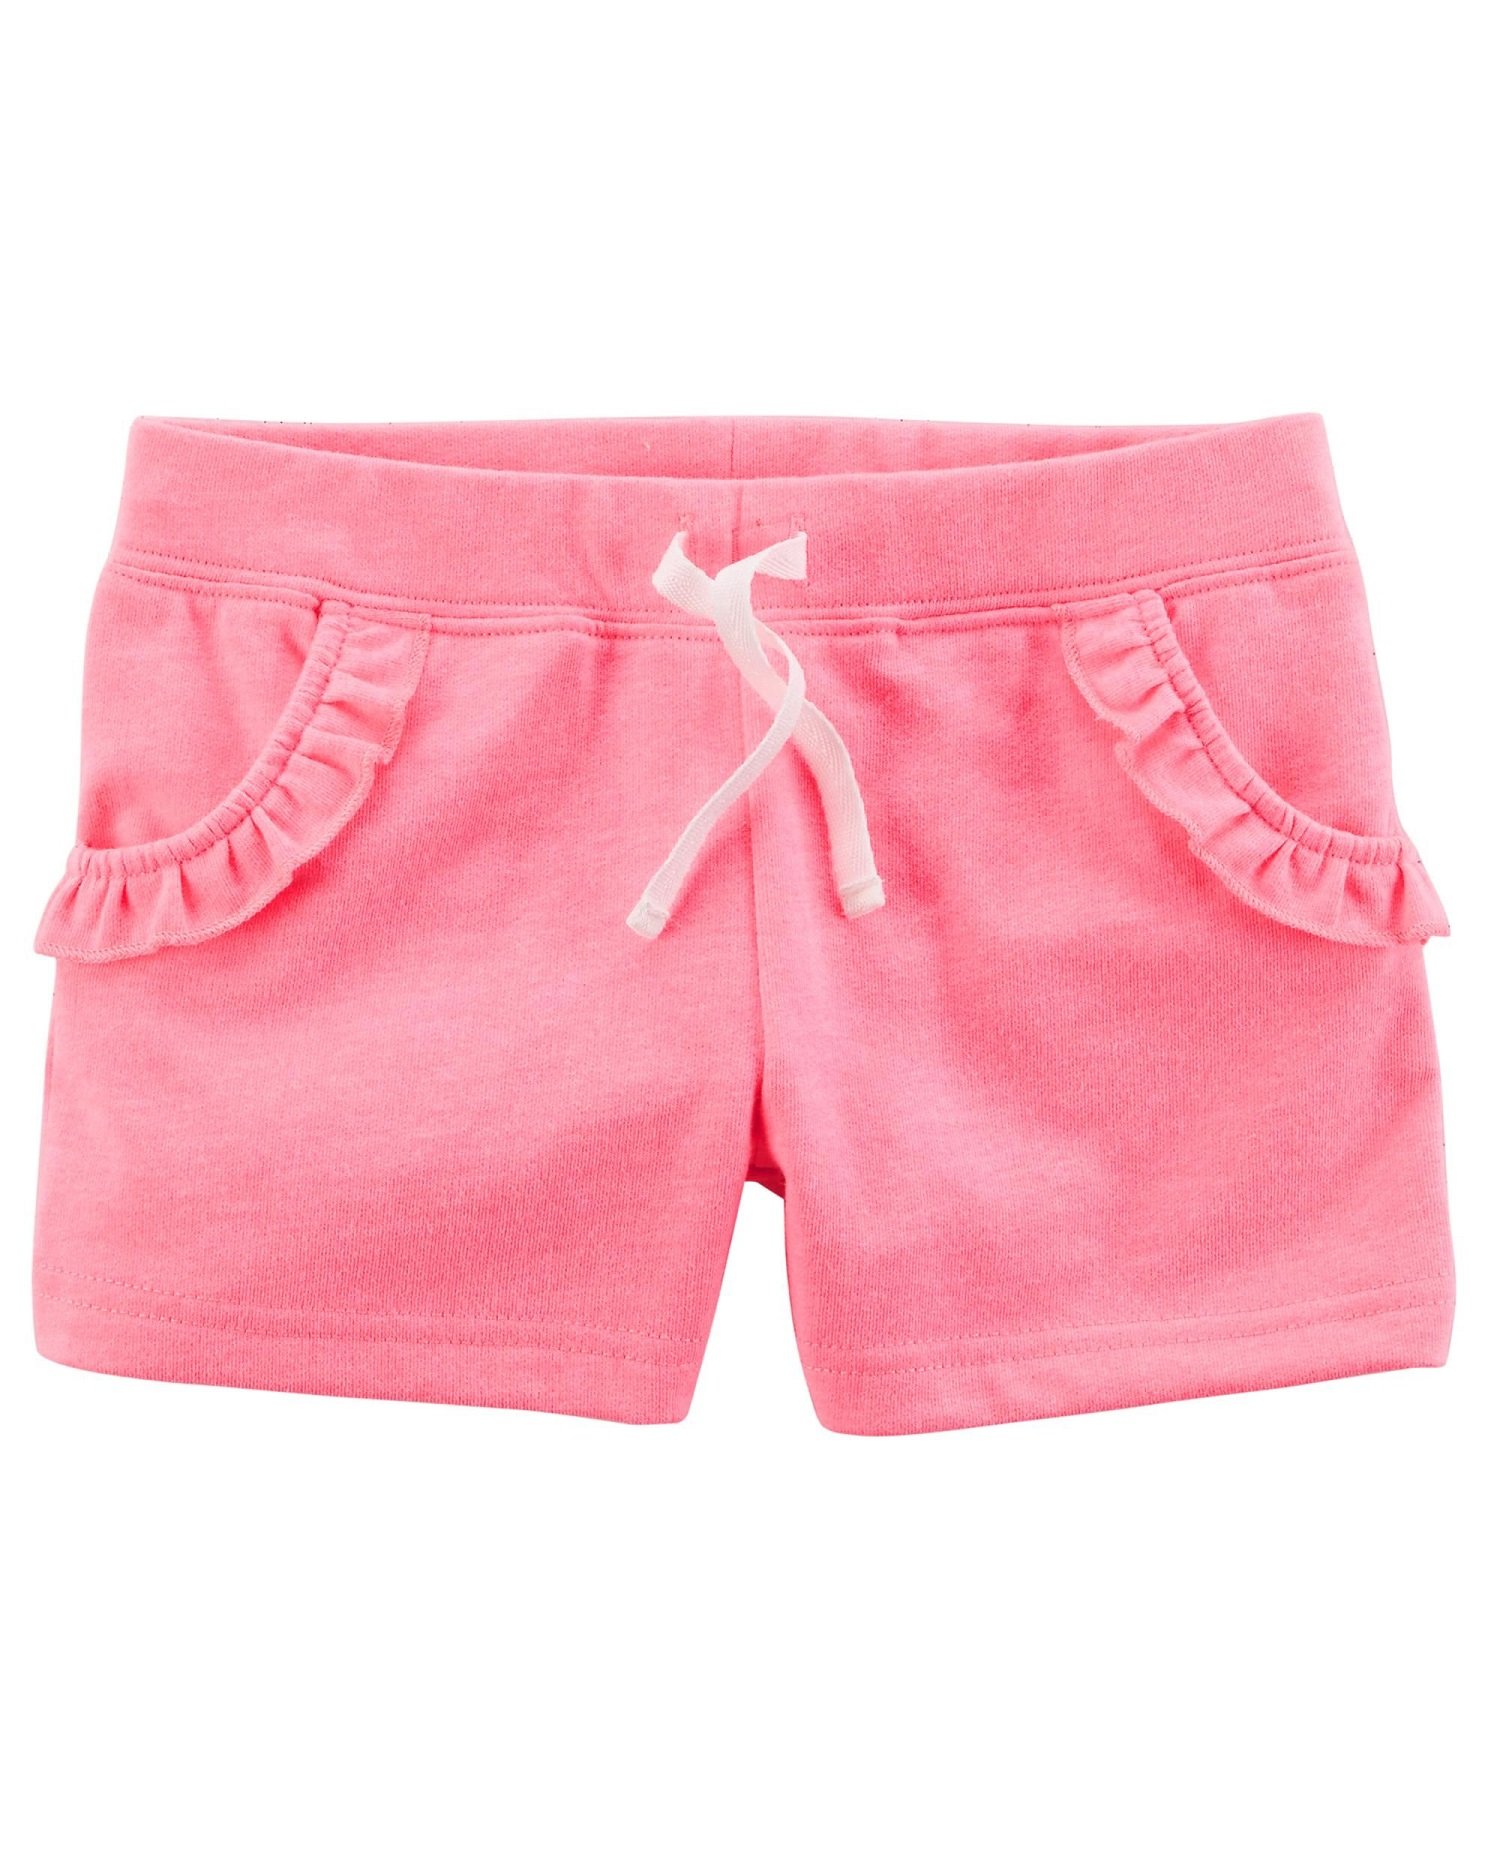 Carter's Baby Girls' French Terry Short, Pink, 6 Months